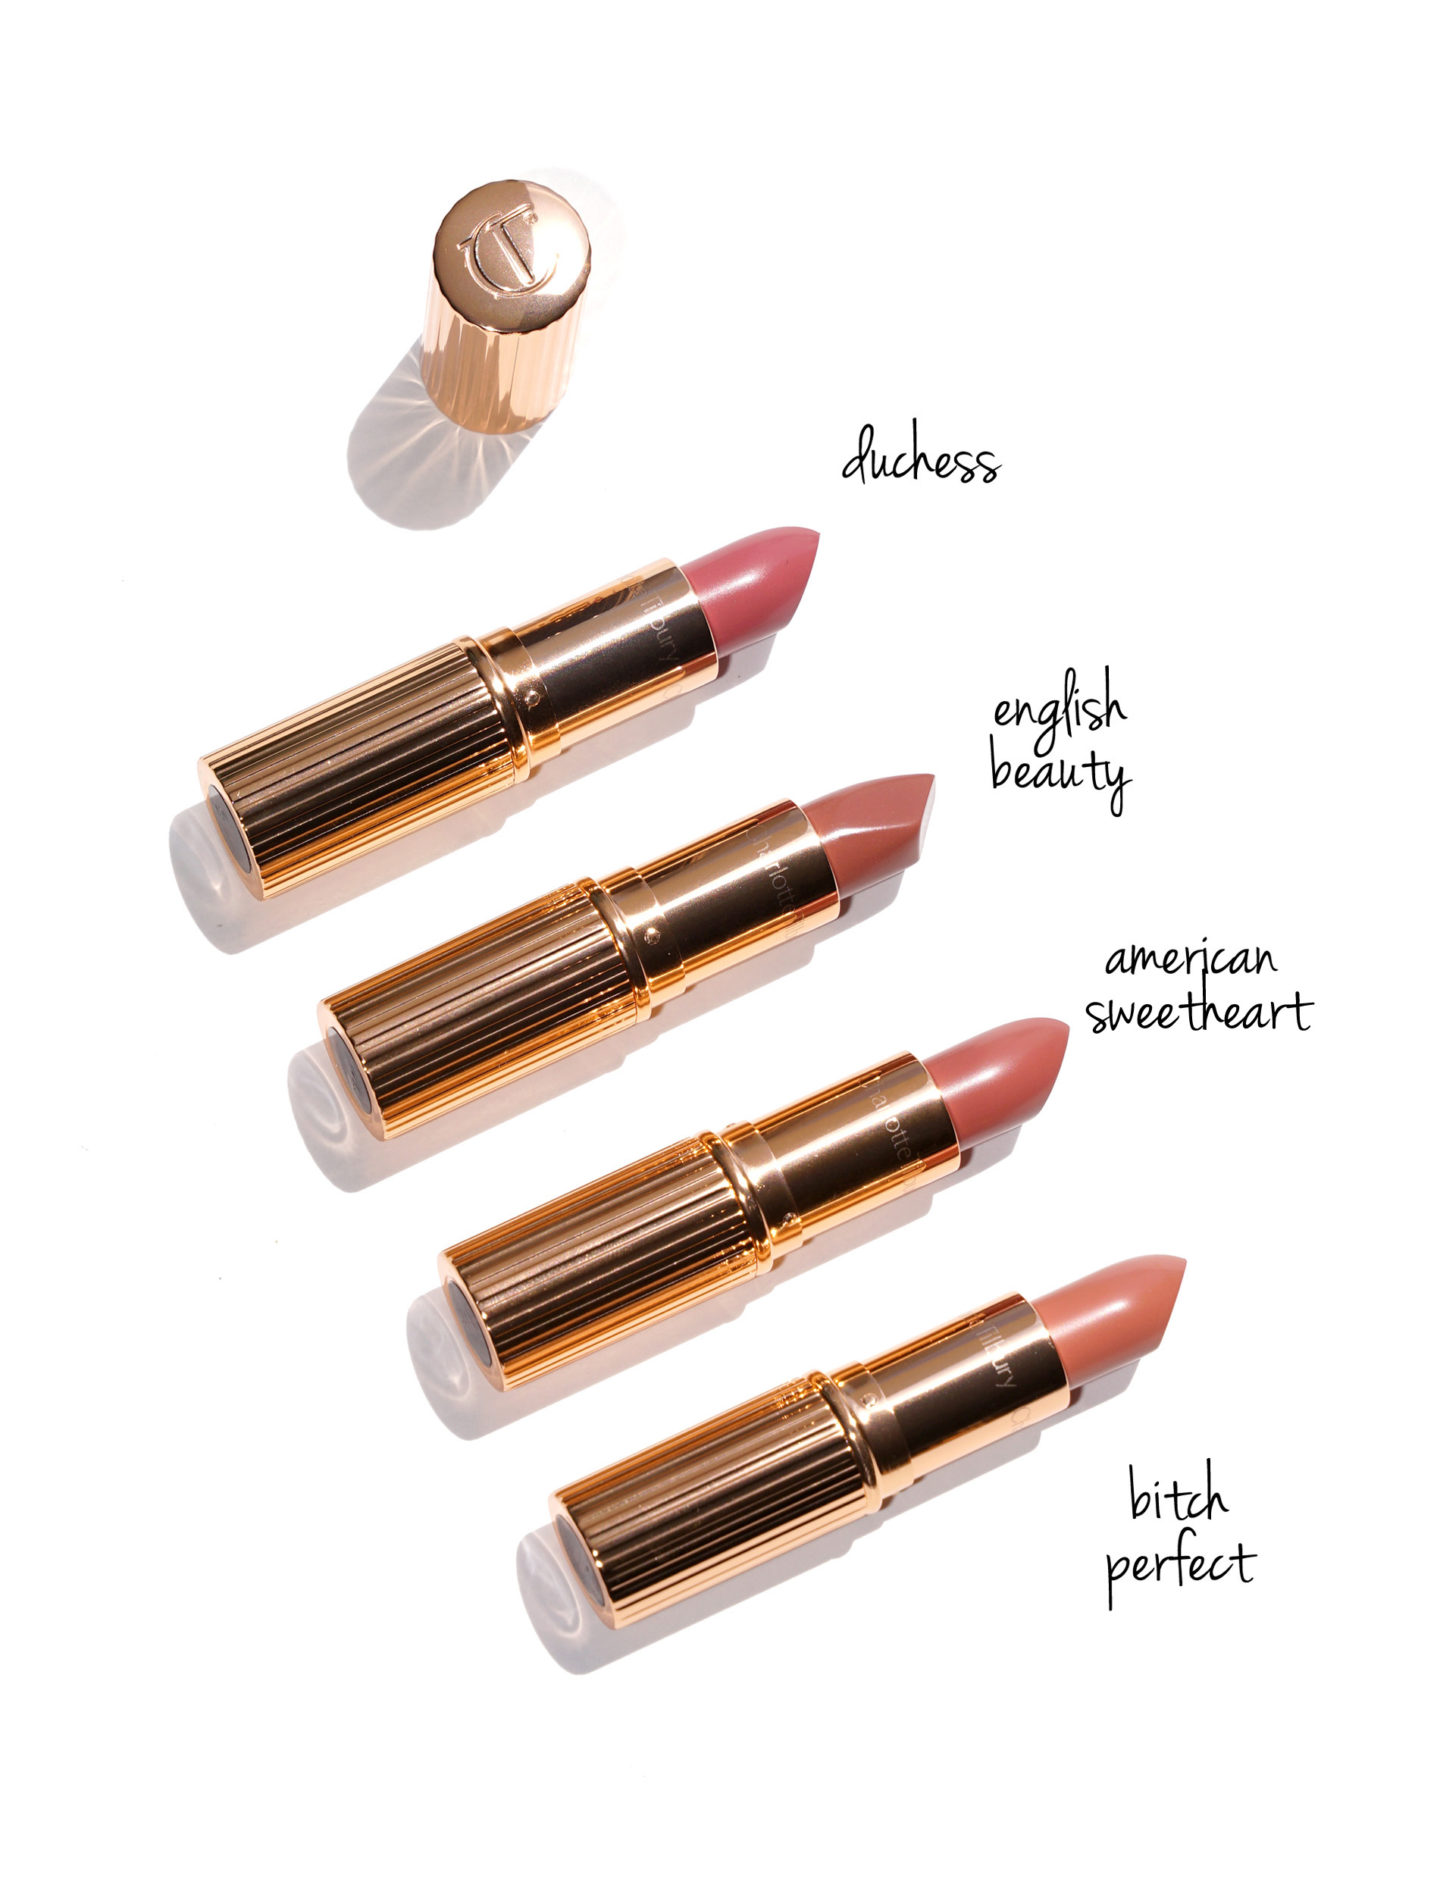 Charlotte Tilbury Online Exclusives The Duchess, English Beauty, American Sweetheart, Bitch Perfect Review + Swatches